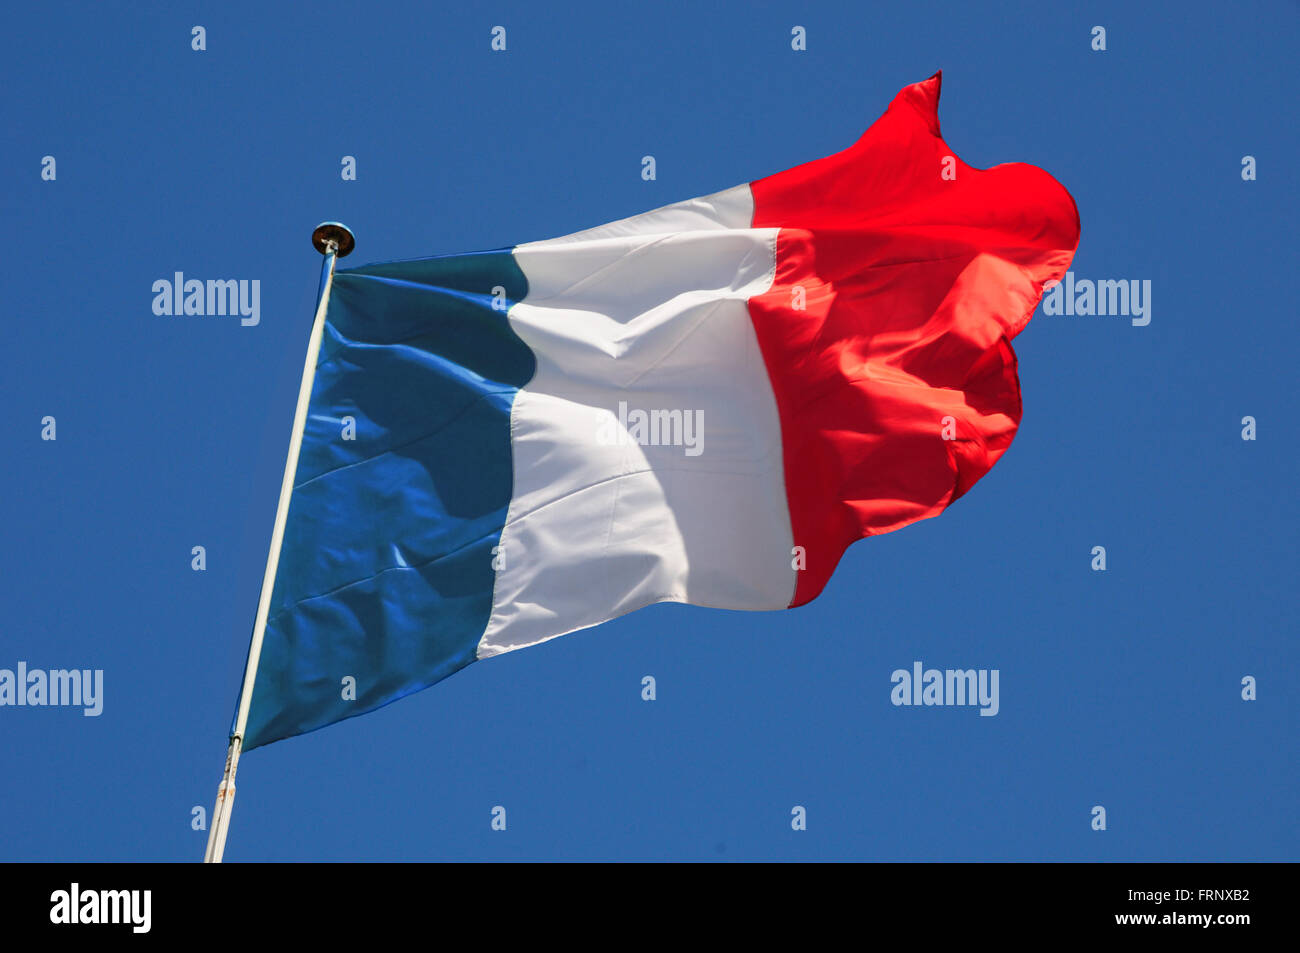 French flag fluttering in a brisk breeze against a bright blue sky. - Stock Image